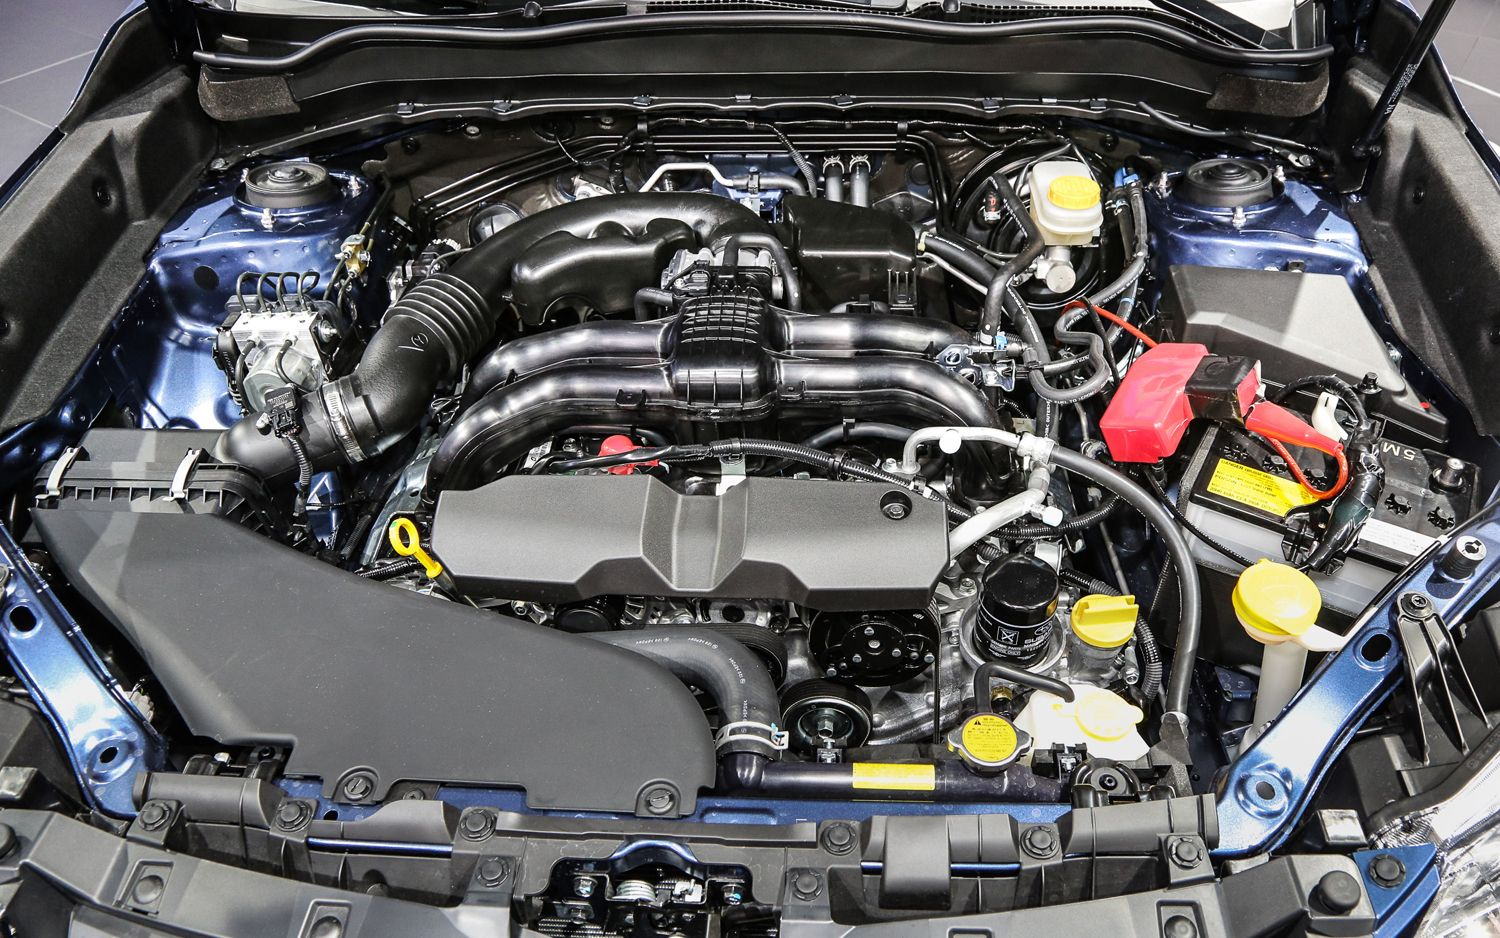 2014 Subaru Forester US Version Engine View